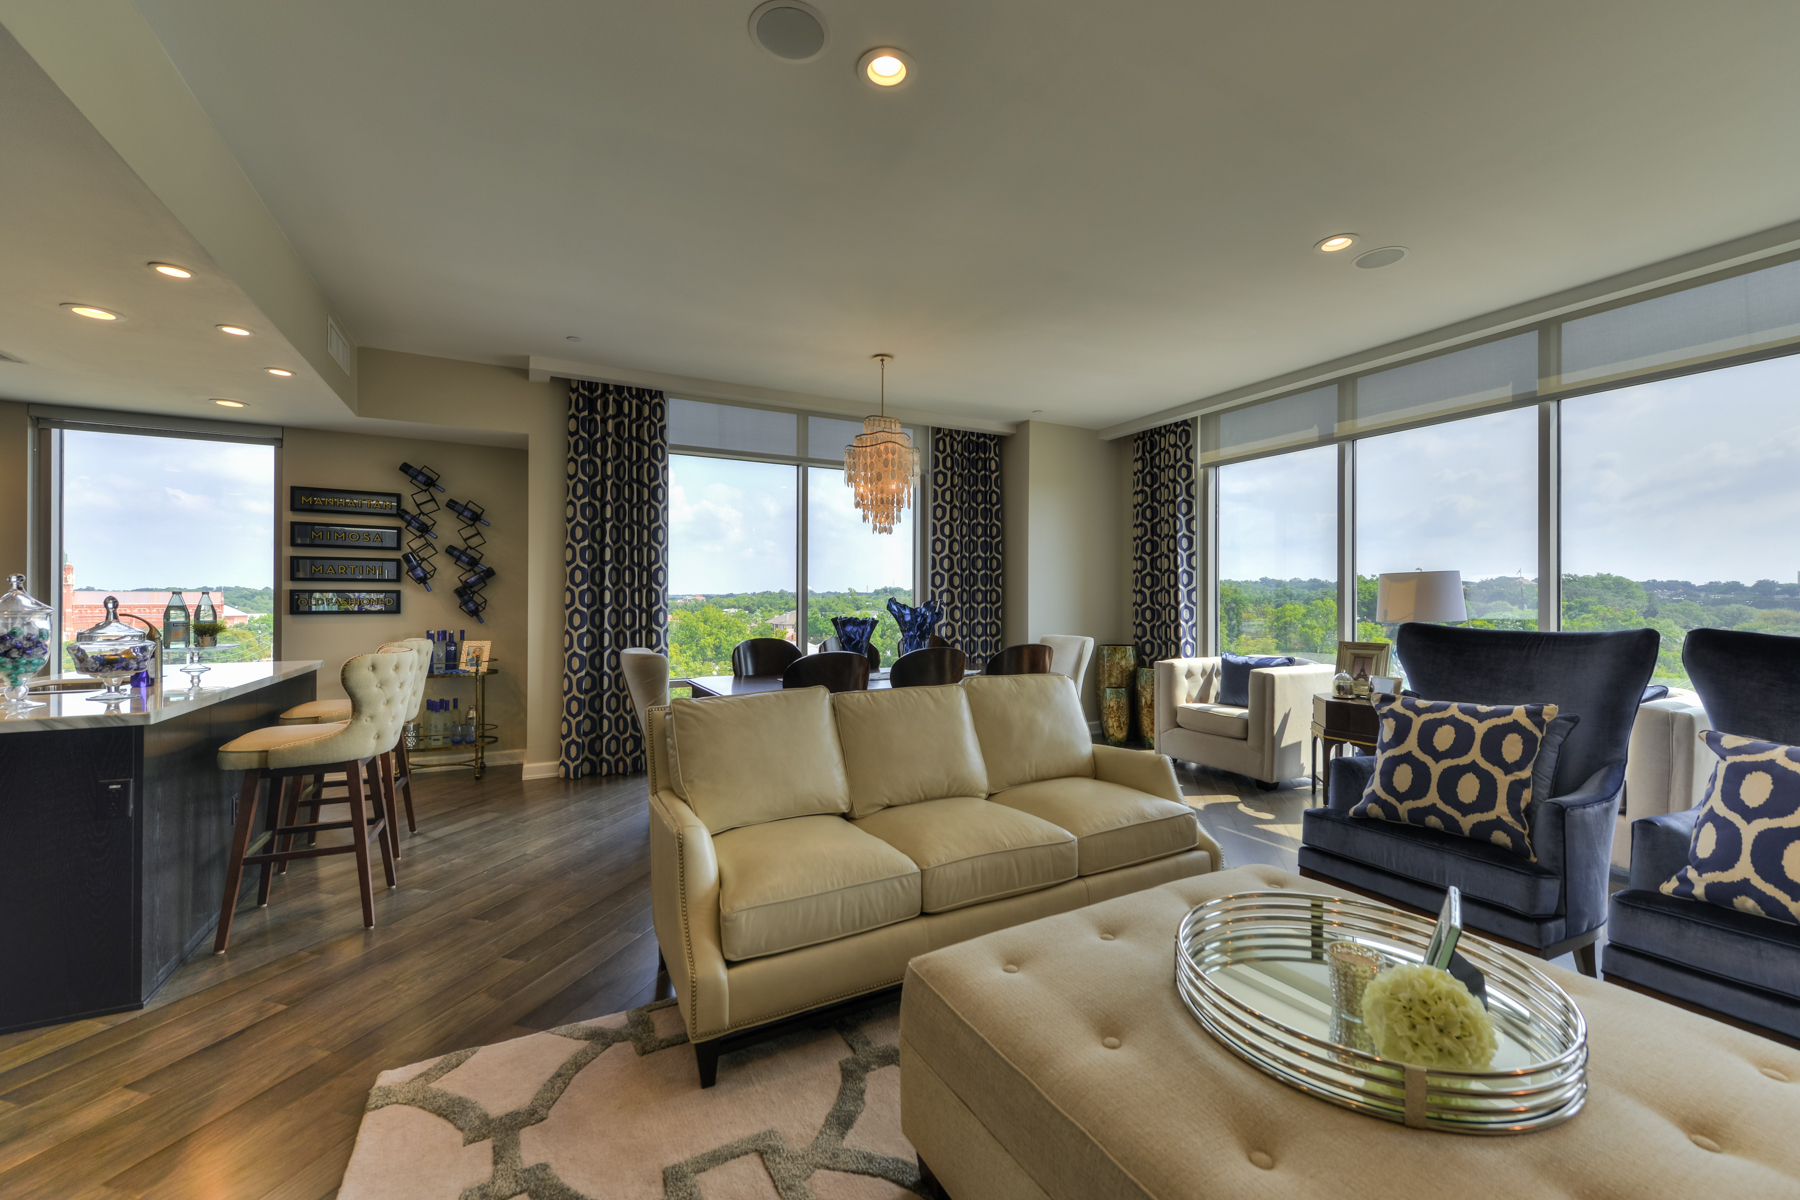 Property For Sale at Luxe Highrise Condo in the Broadway